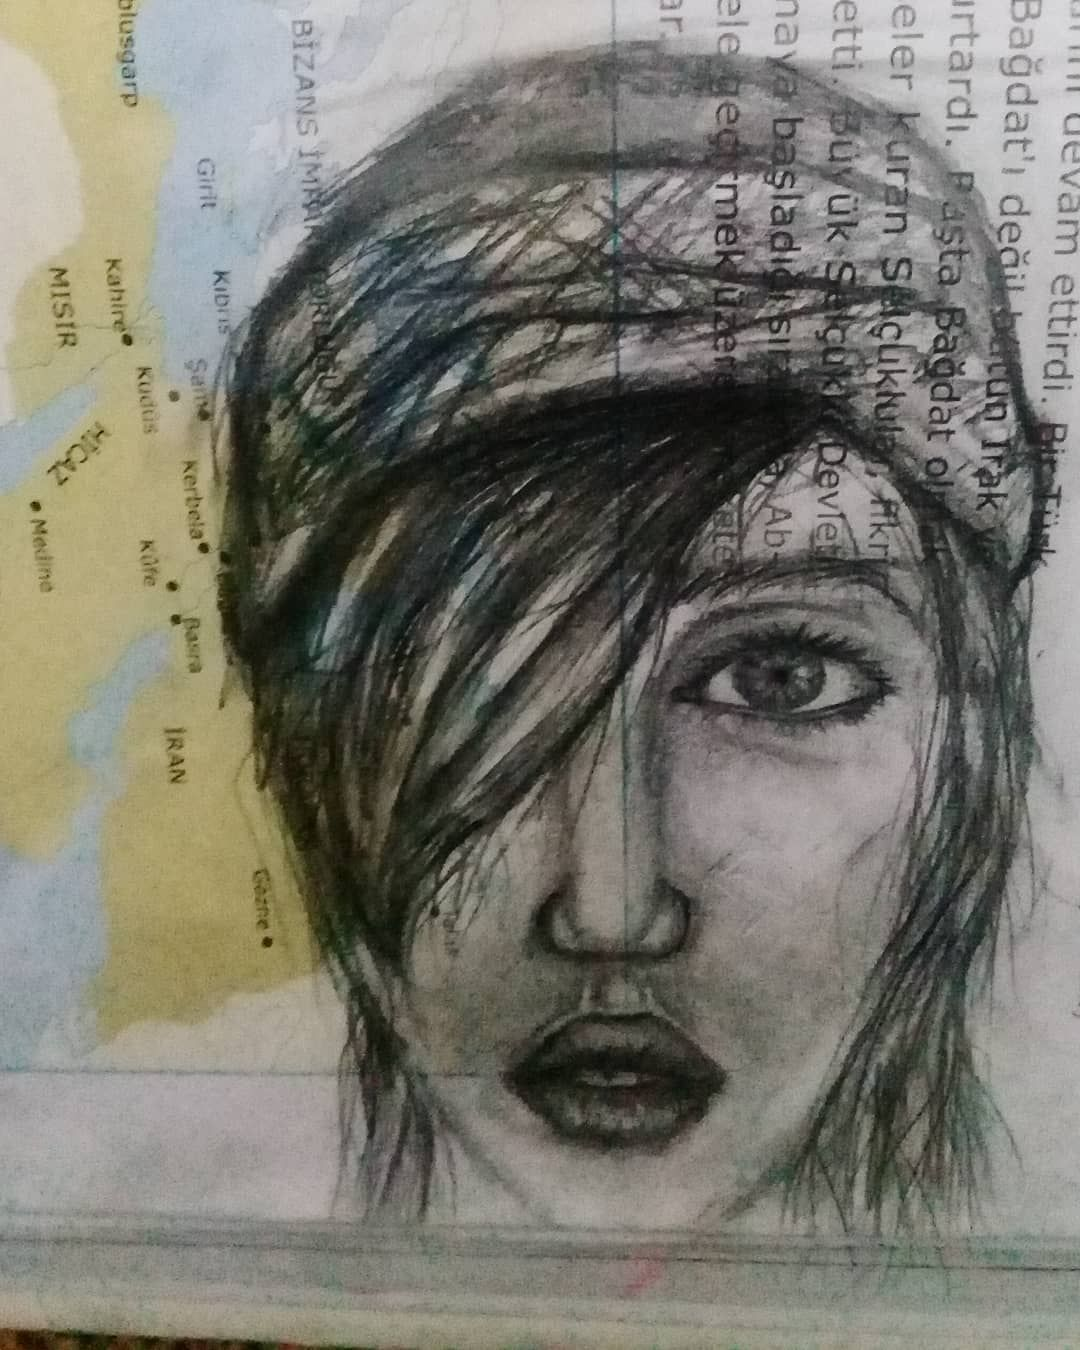 Charcoal portrait drawing light and shade application drawingsdrawings ideasdrawings easydrawings peopledrawings tumblrdrawings of people drawings